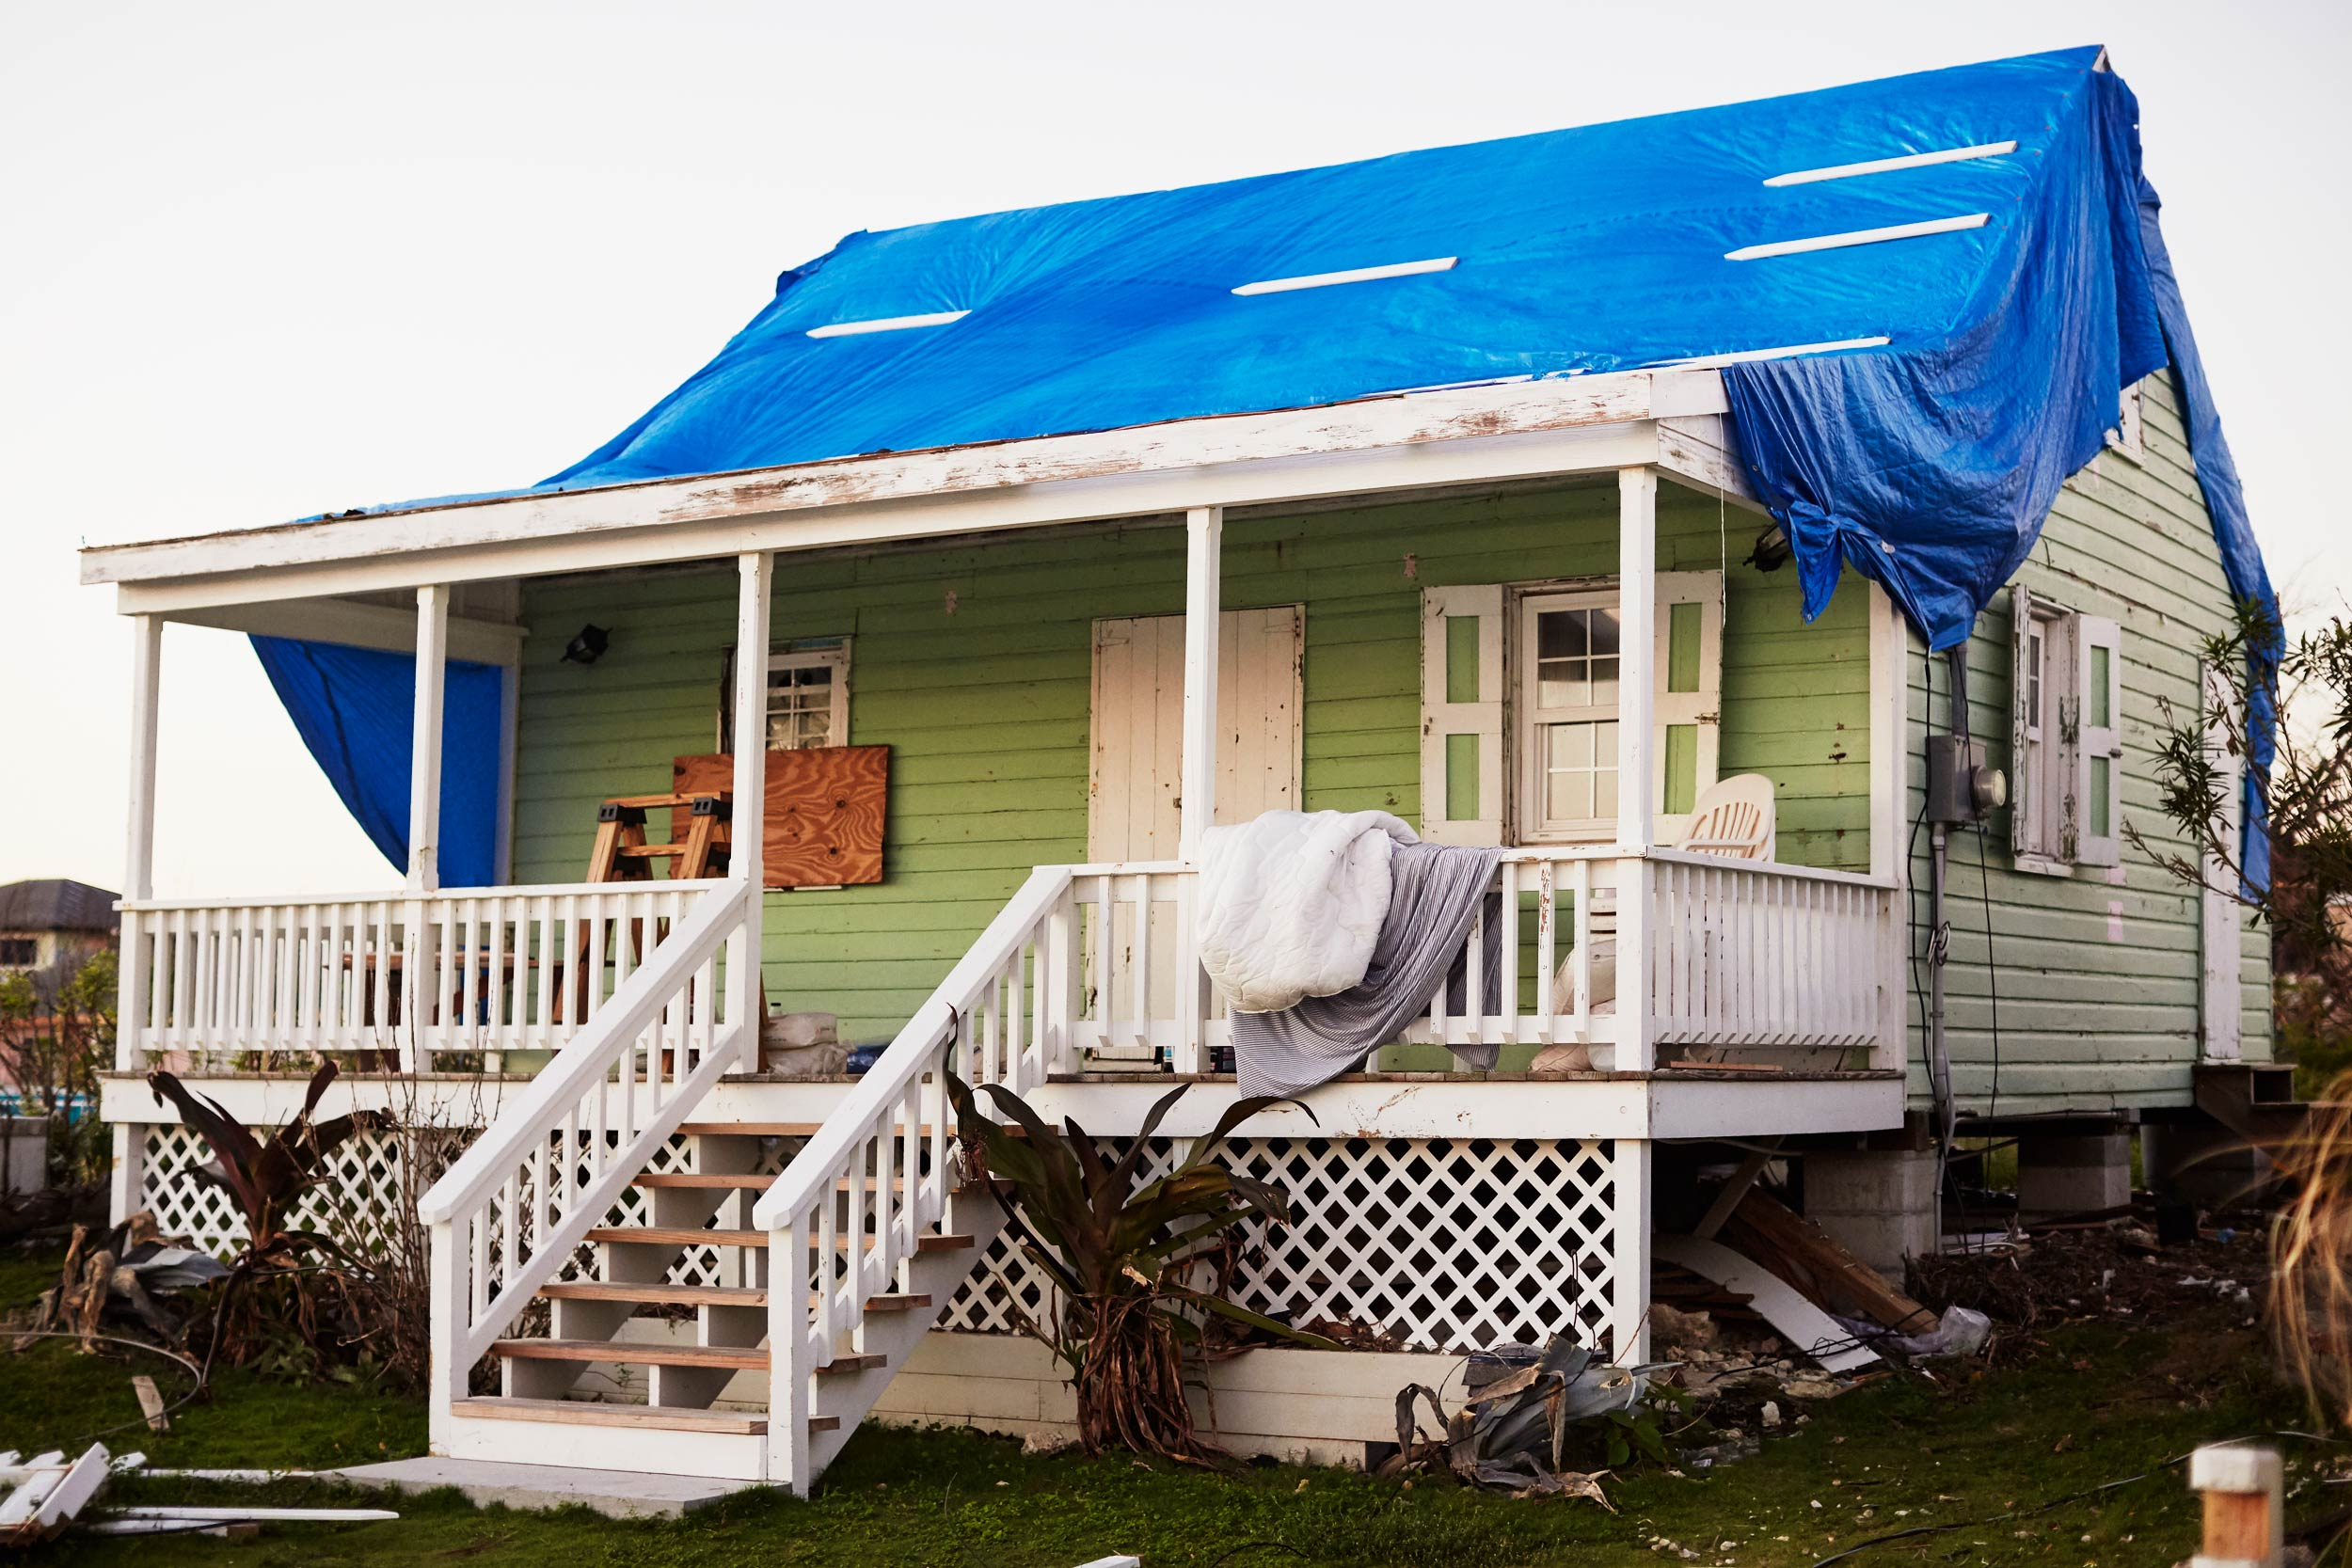 15-H911-BAHAMAS-HOUSE-DESTROYED-2